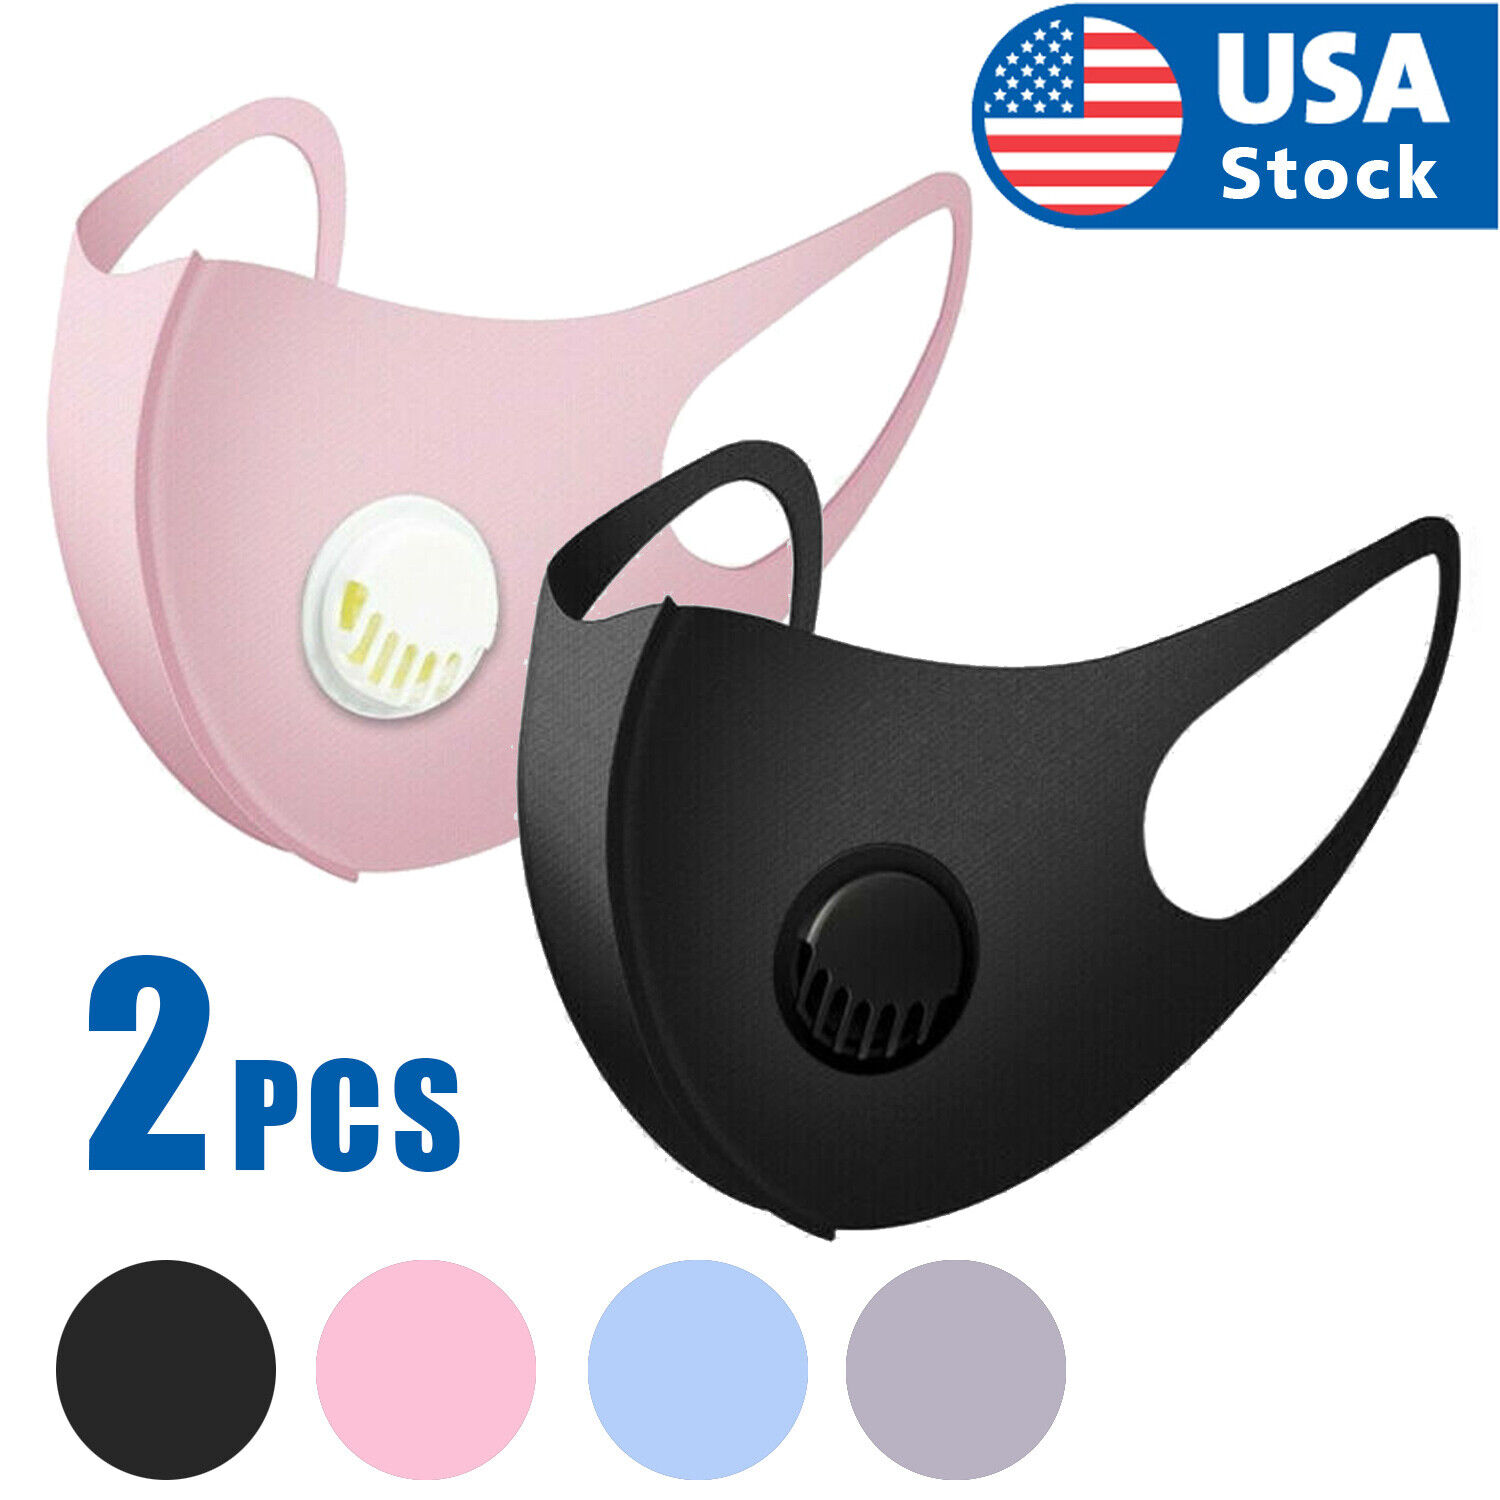 2x Reusable Washable Adult Soft Cloth Breathable Face Mask With Breathing Valve Accessories